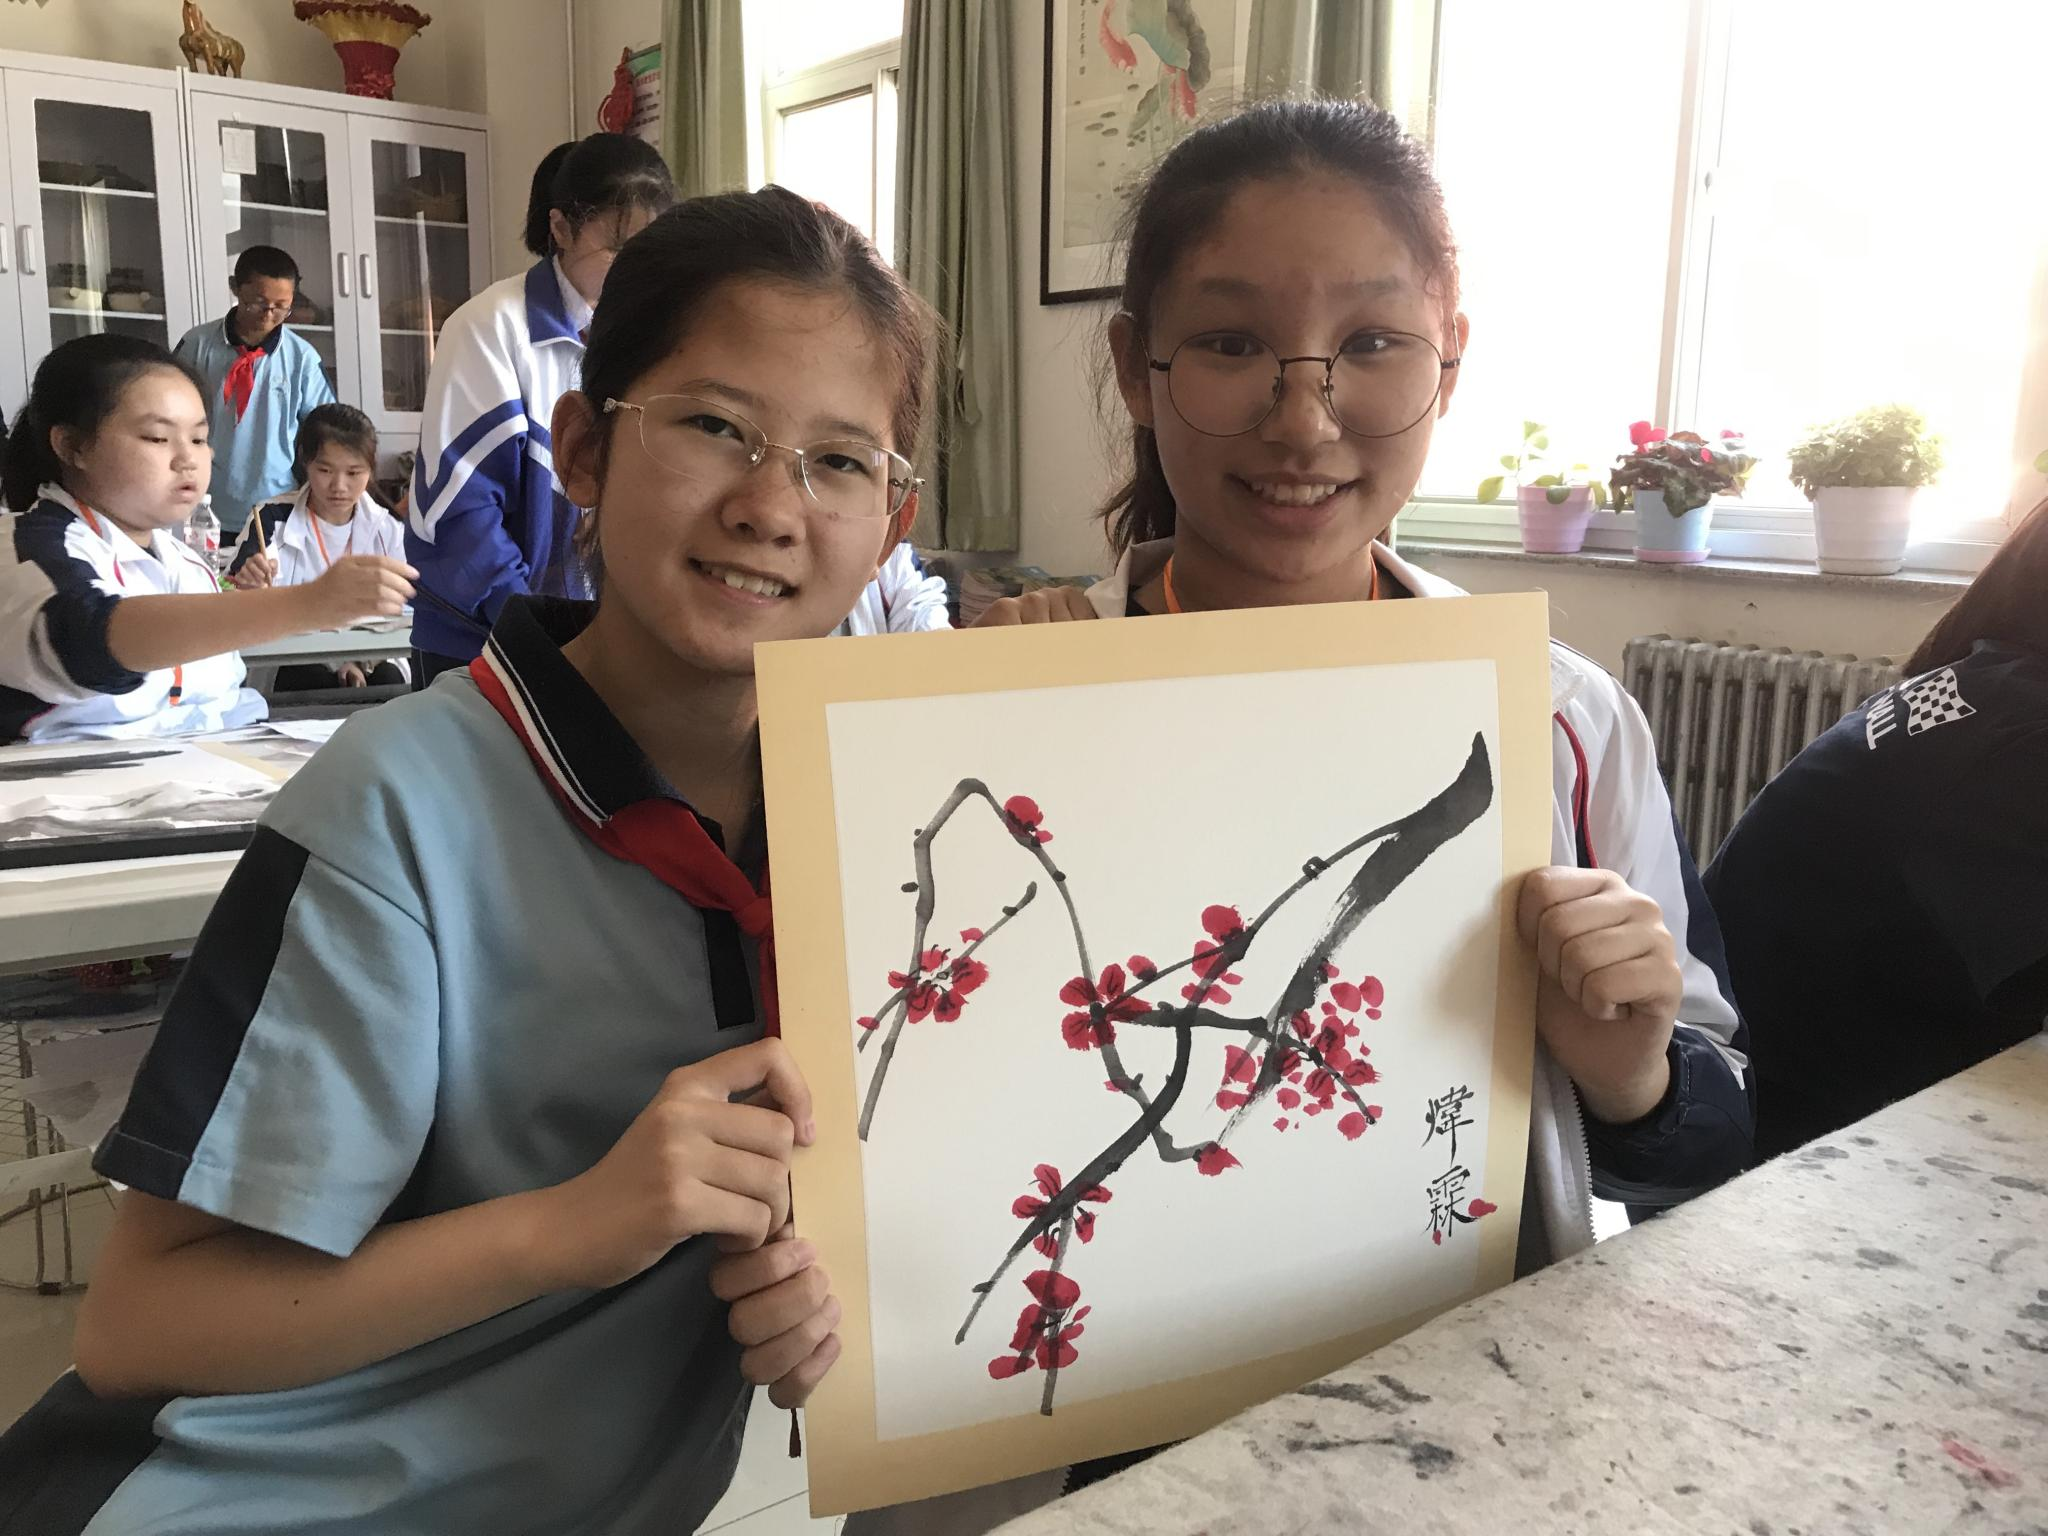 We learned Art together. Is my drawing wonderful?